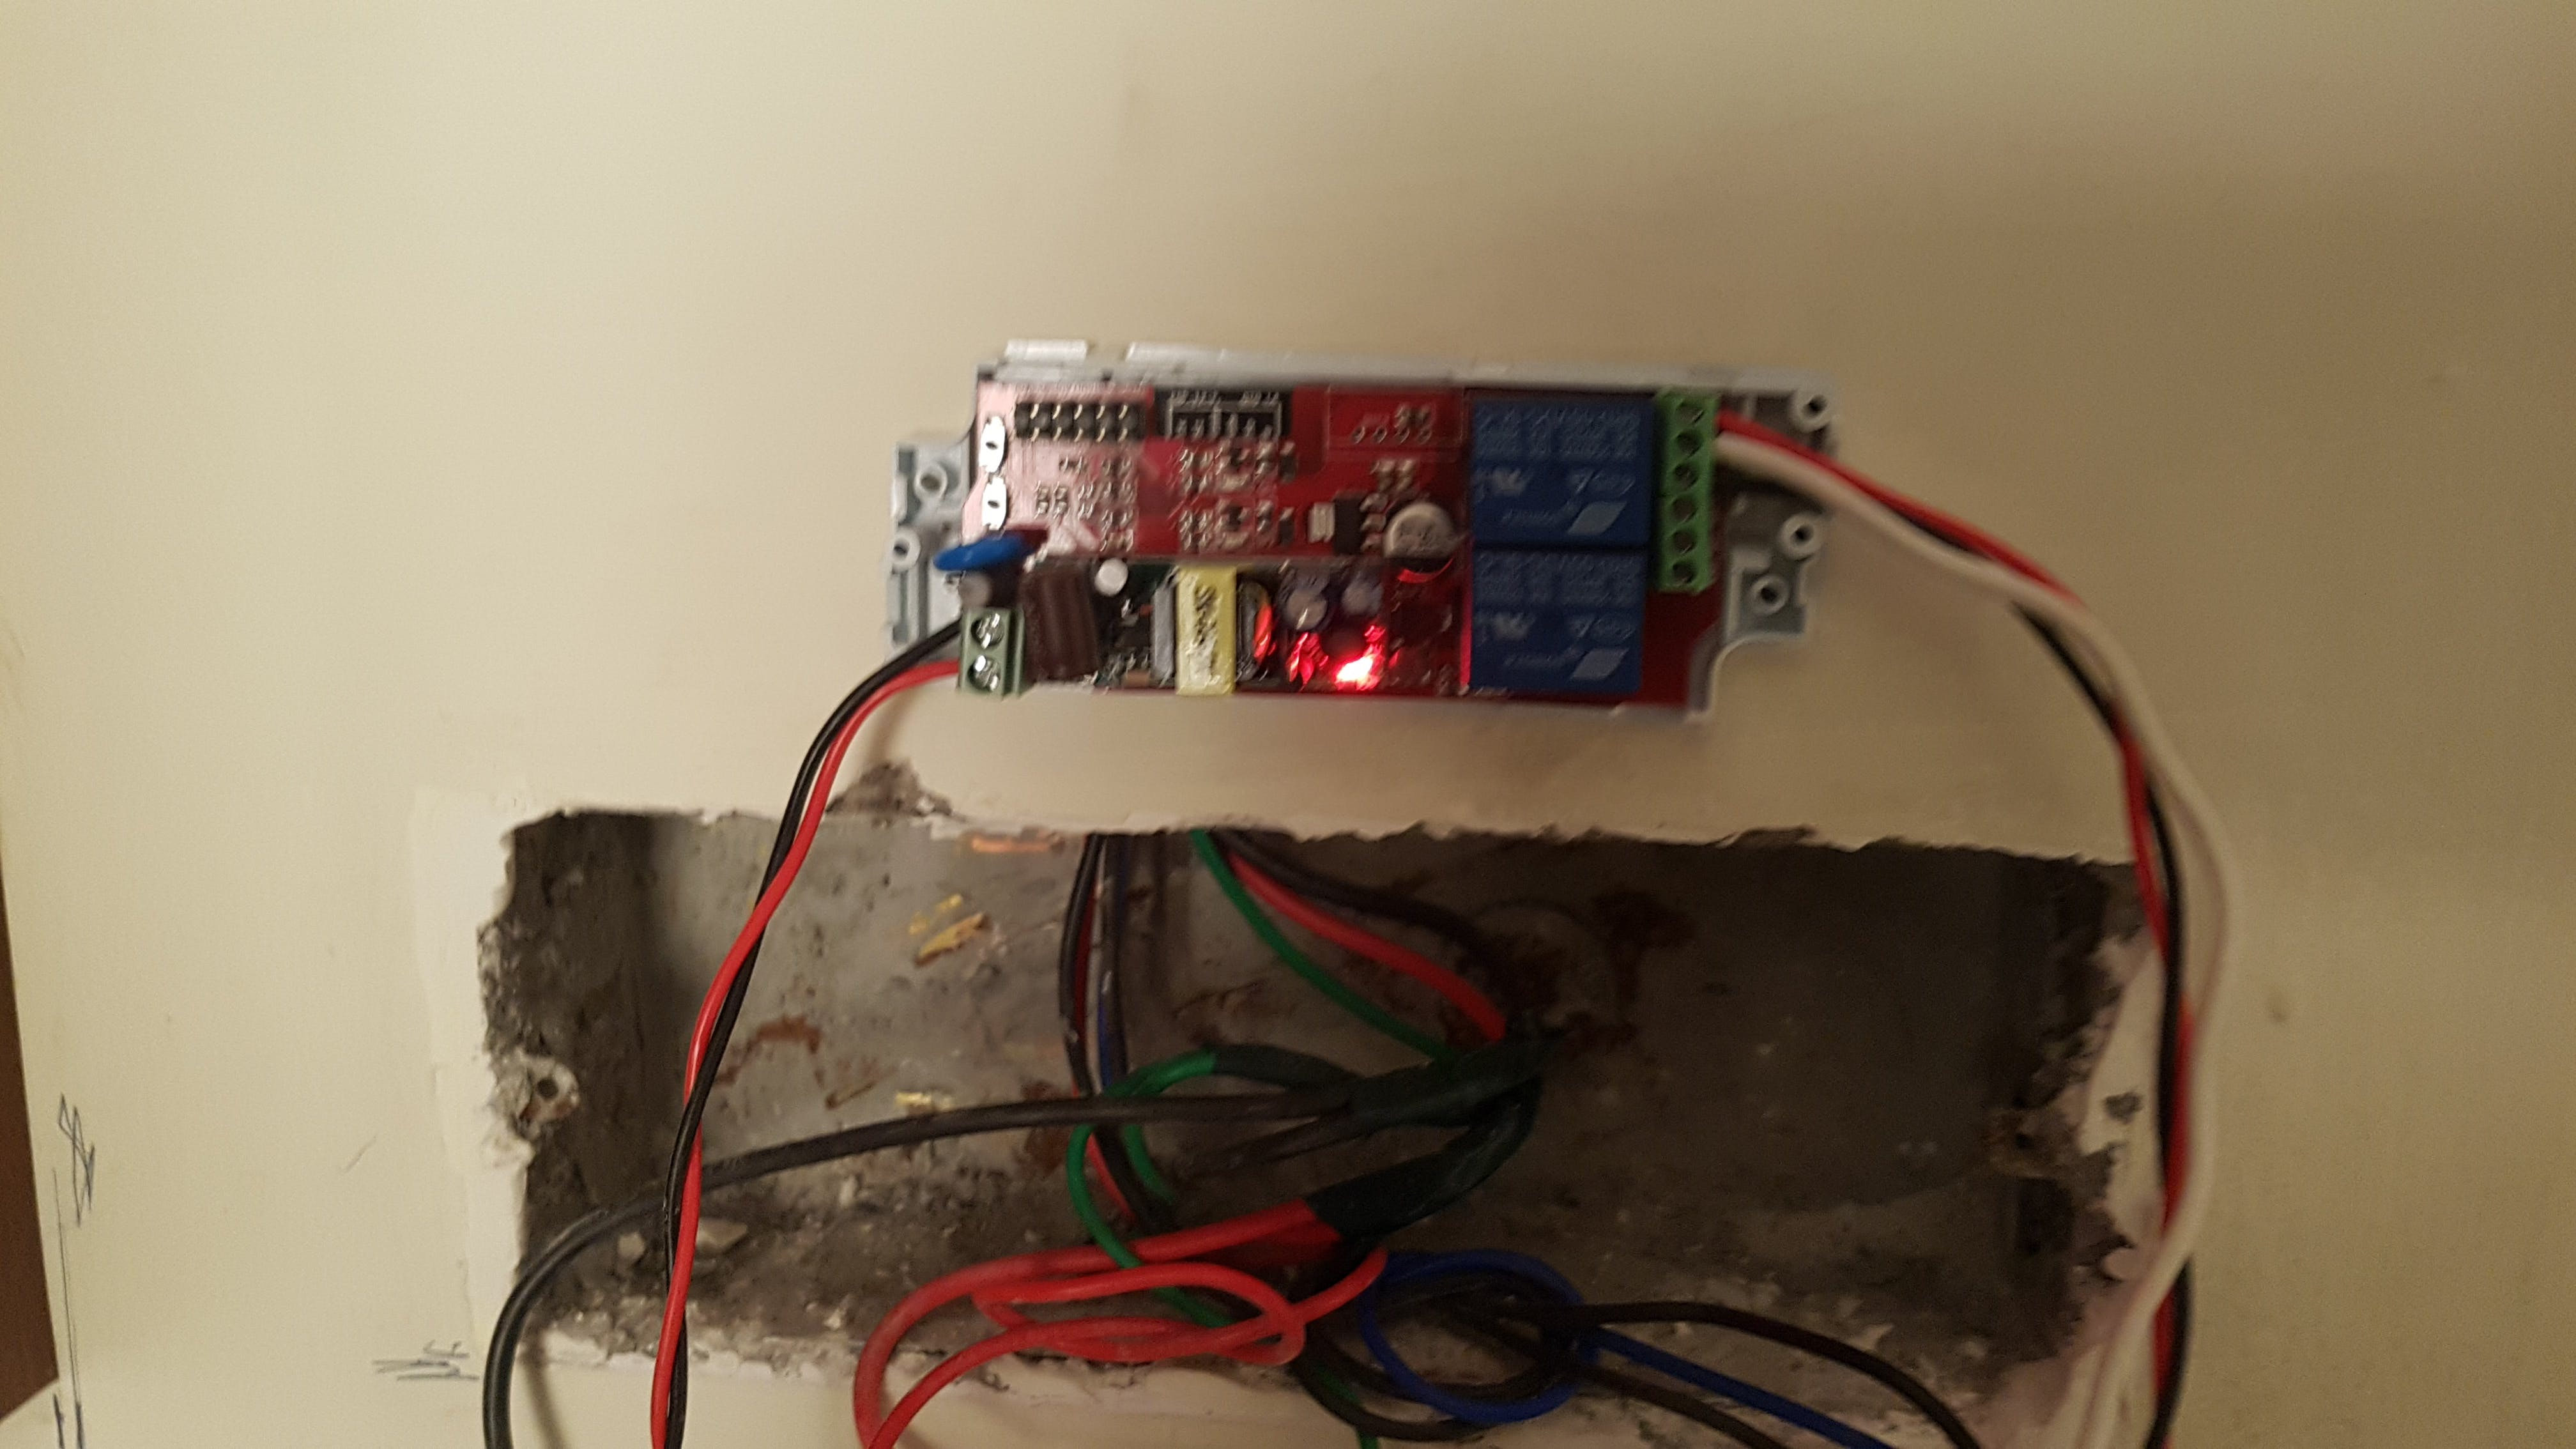 Electrodragon relay connected to the switch board. BEWARE 220 V !!! :)